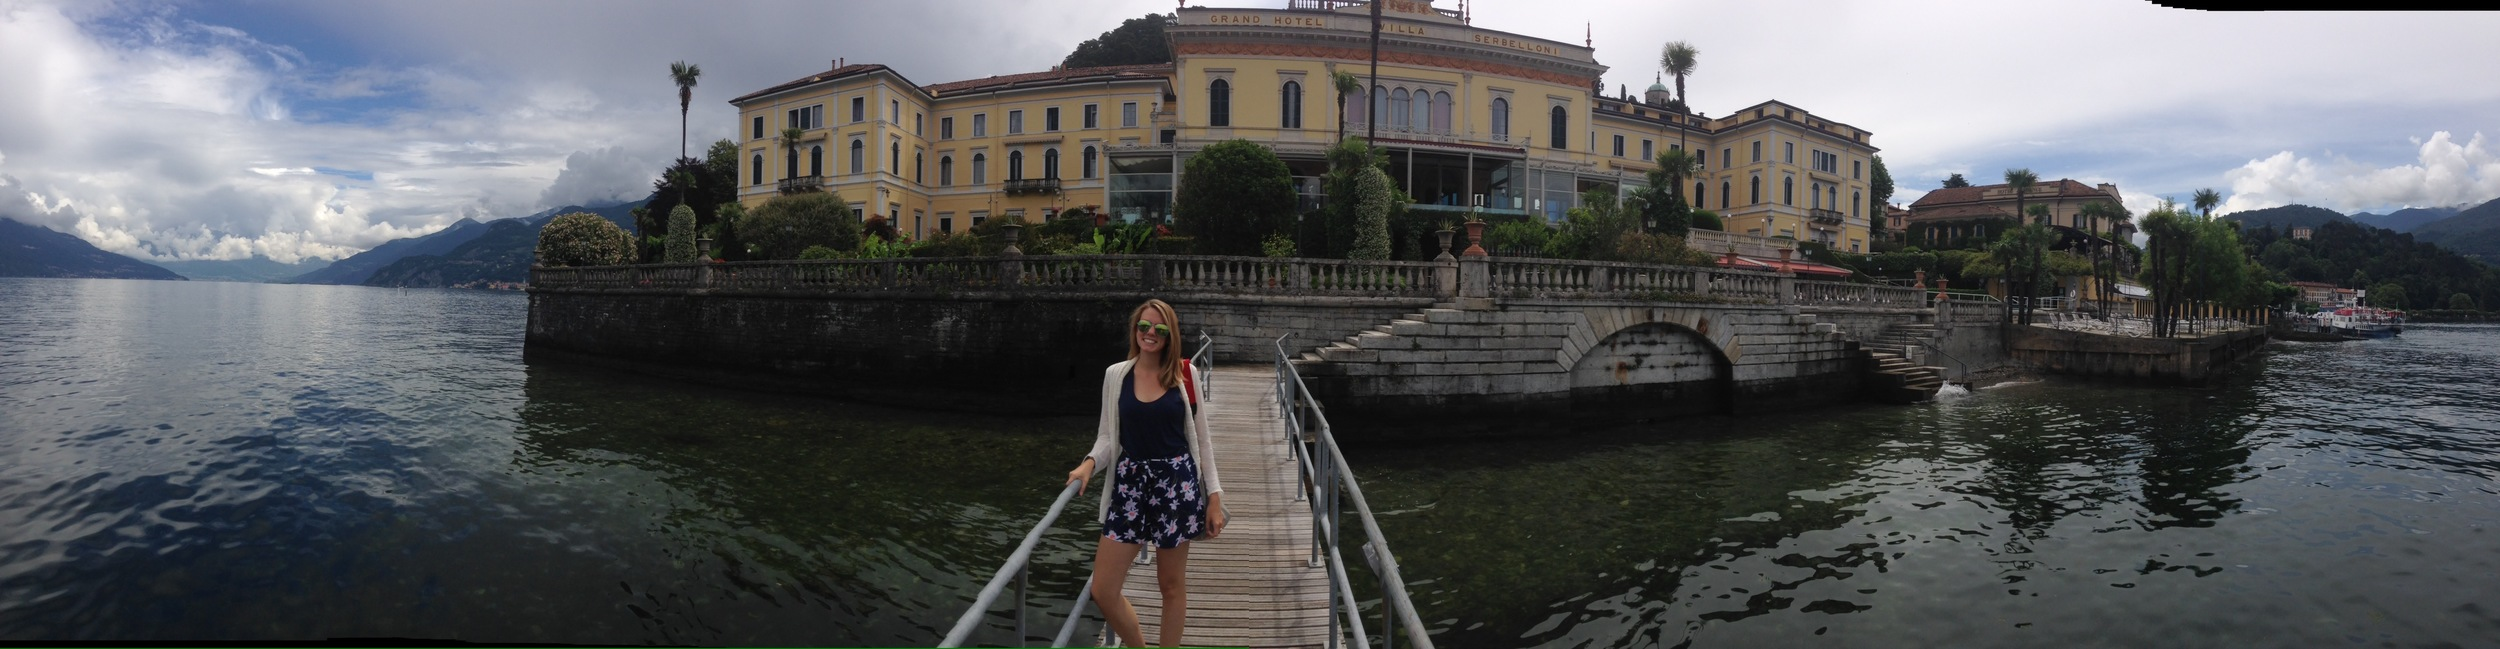 Amy Johns Grand Hotel Villa Serbelloni Italy